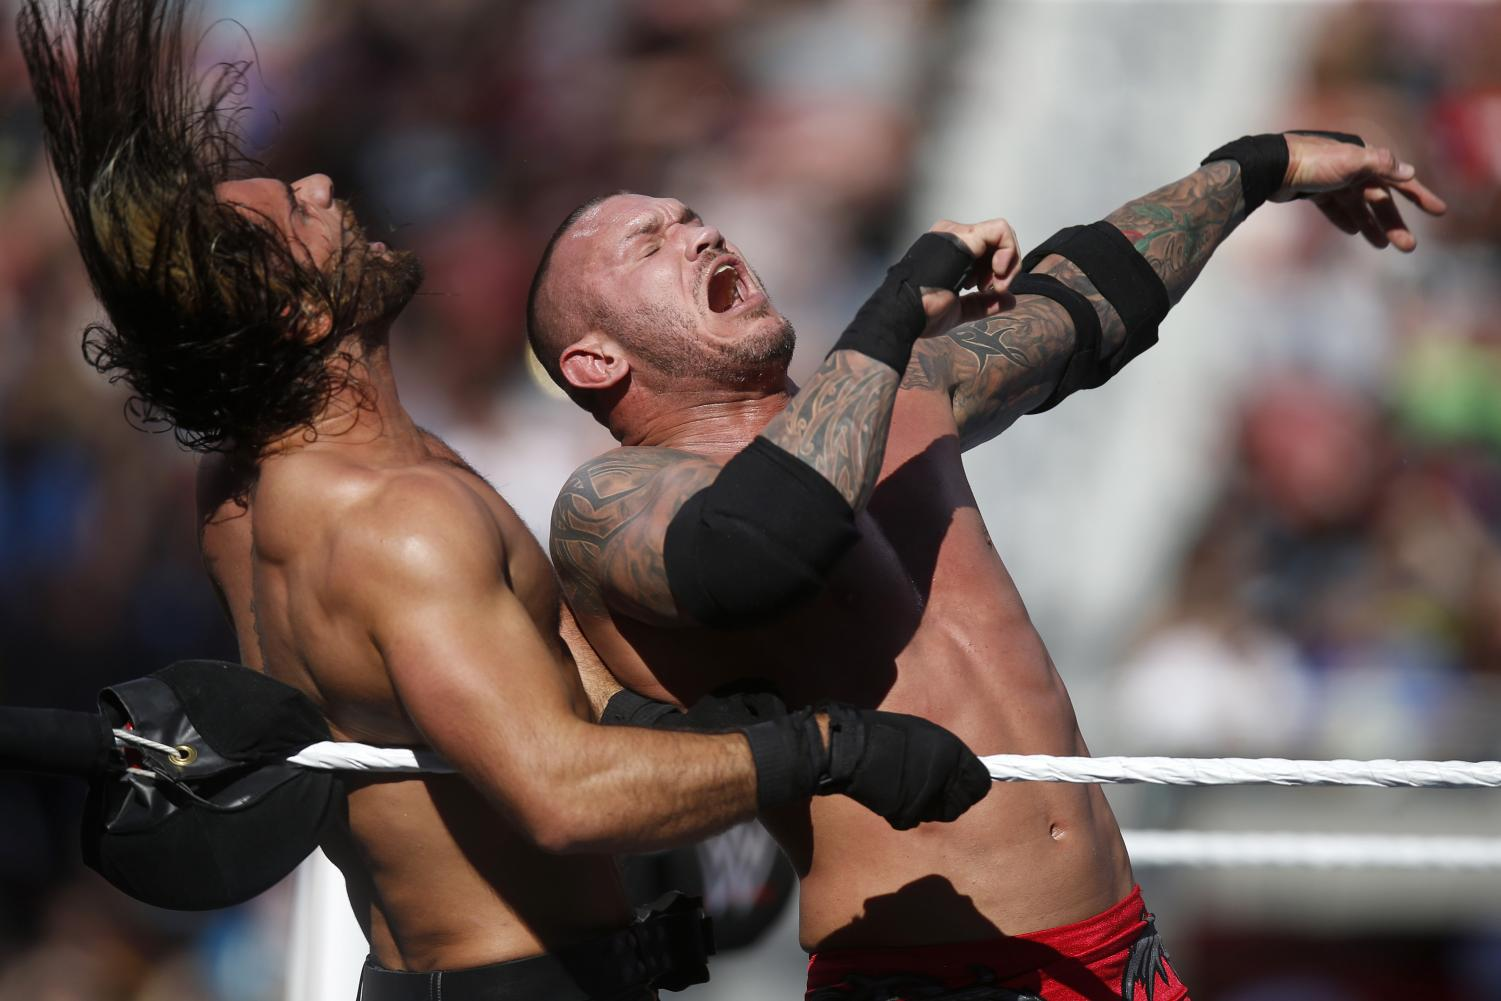 WWE's Randy Orton, right, hits Seth Rollins during WrestleMania at Levi's Stadium on Sunday, March 29, 2015 in Santa Clara, Calif.